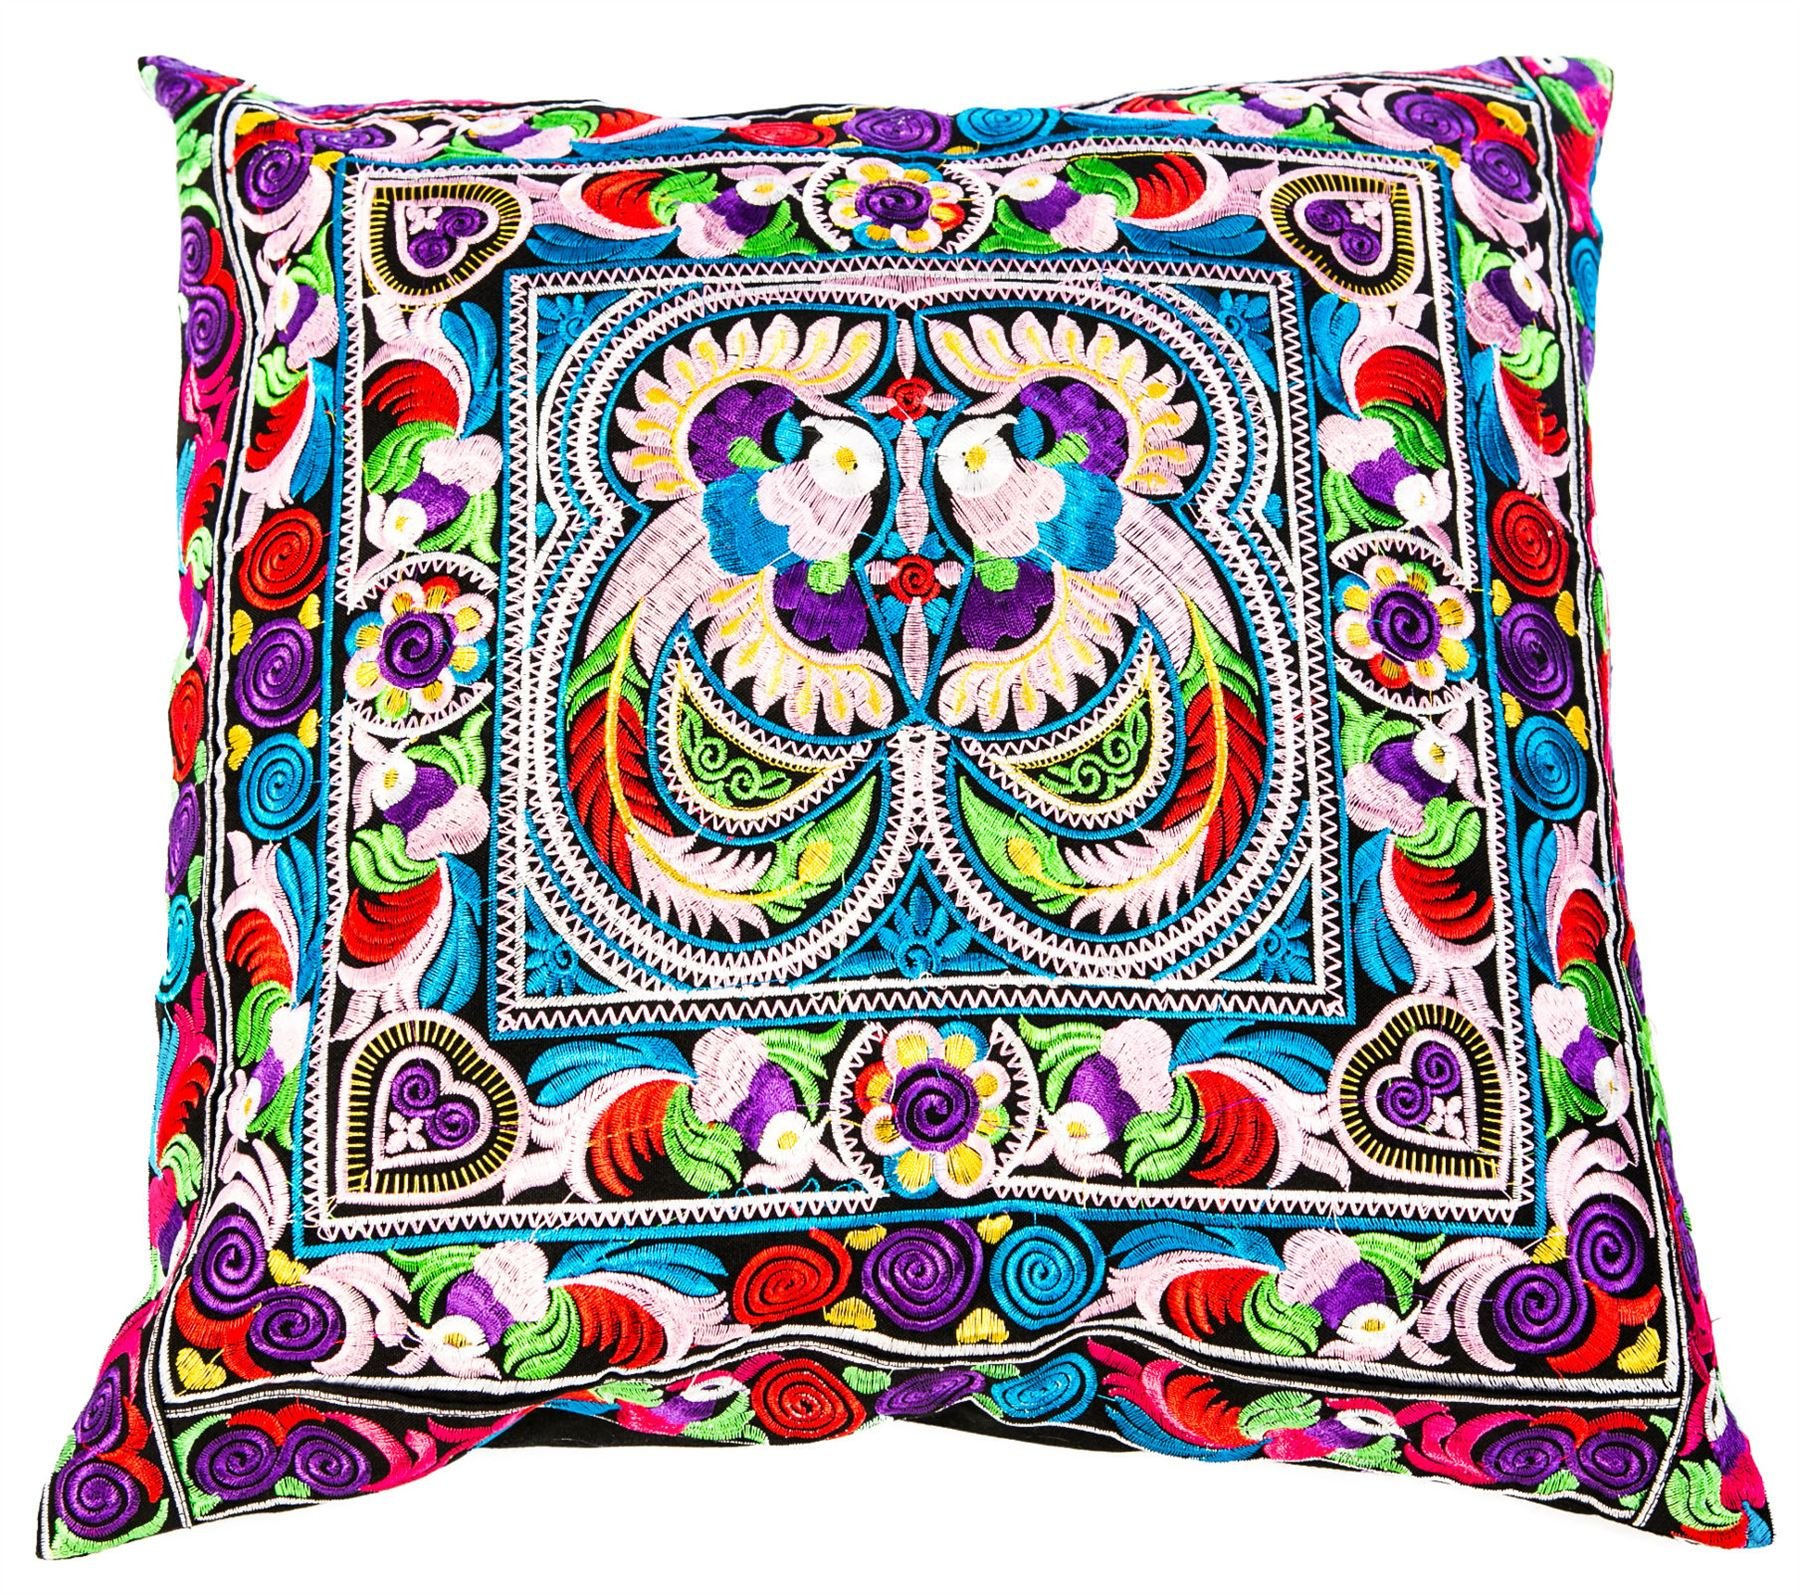 Lofbaz Hmong Pillowcase Peacock Pink One Size